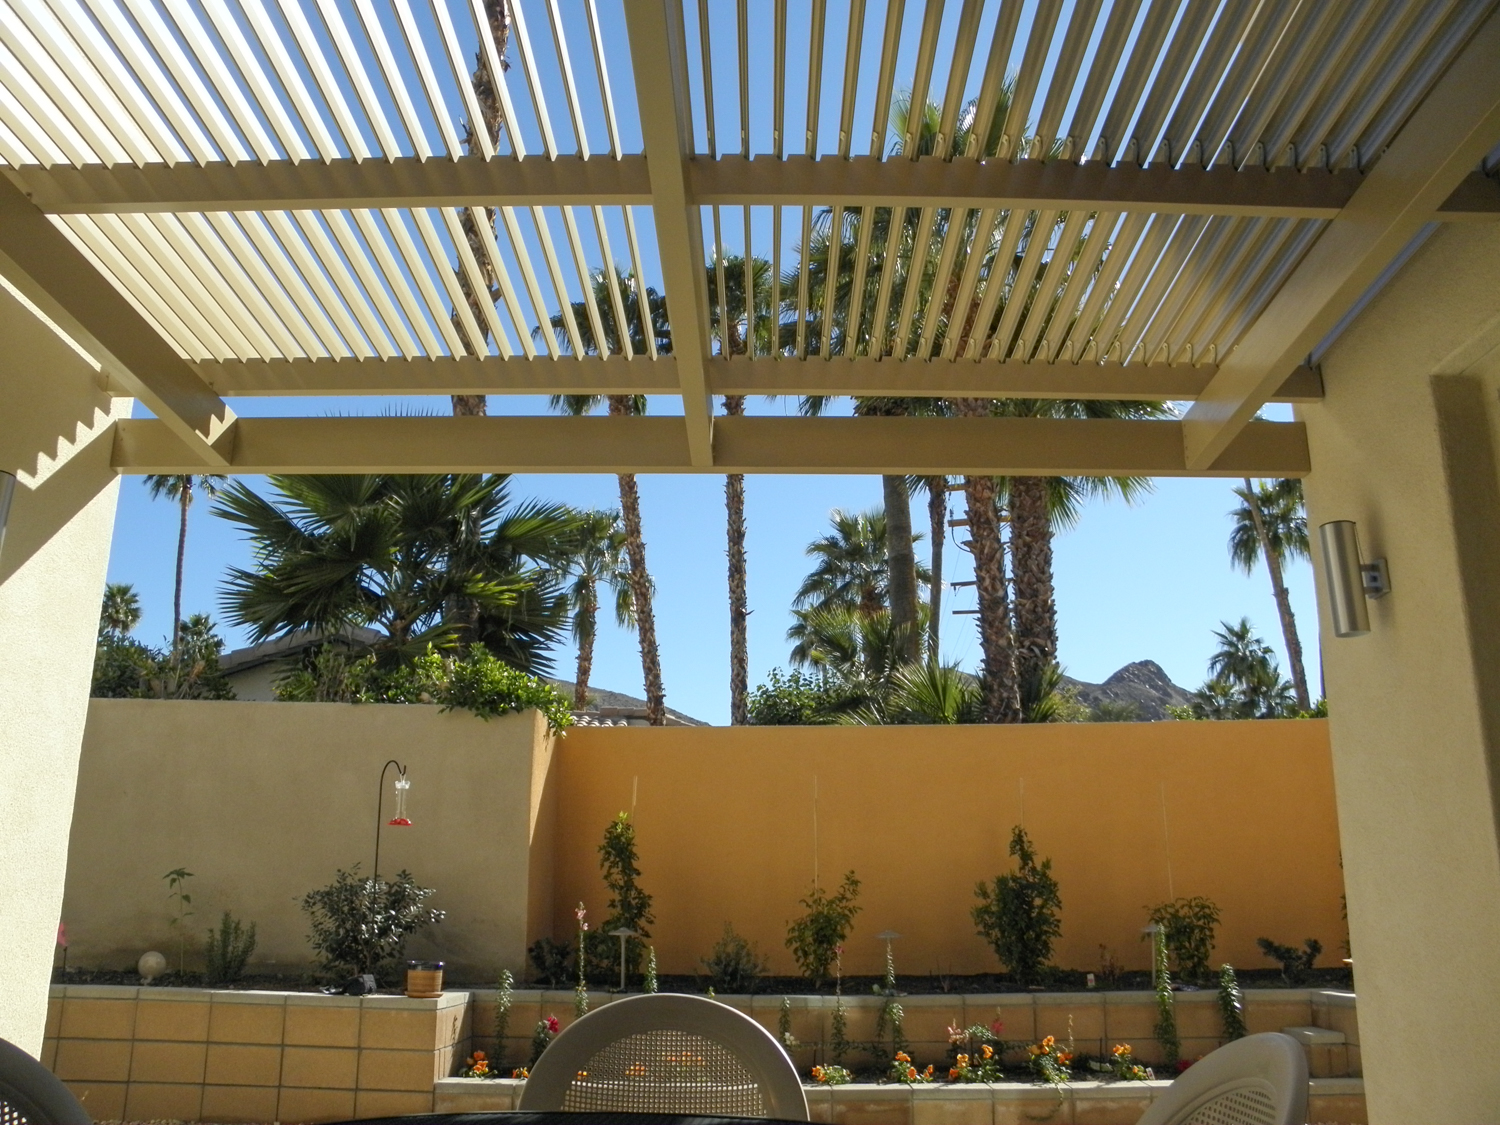 Solara Adjustable Patio Cover, Louvered Roof System, Palm Springs, CA 92262 and 92264